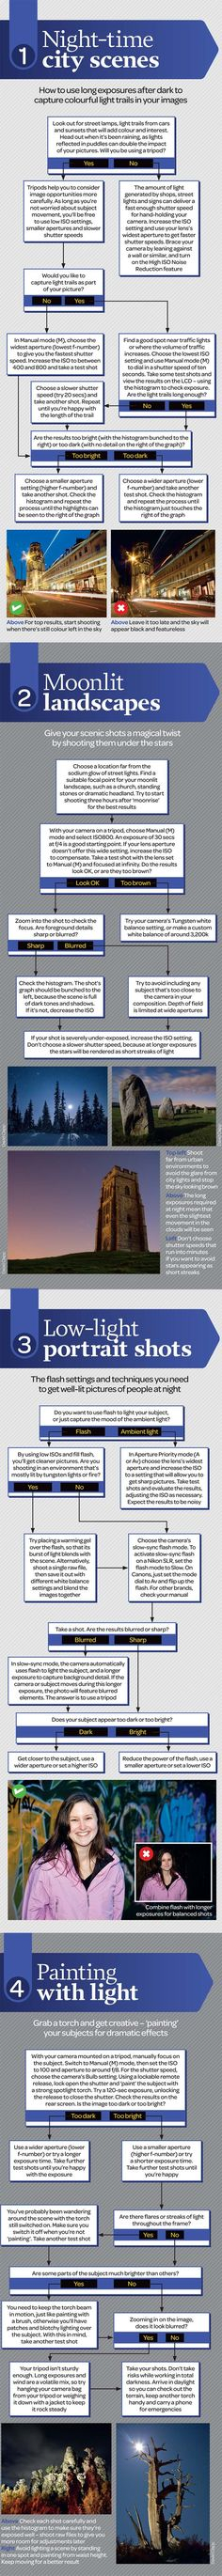 Free night photography cheat sheet: shoot any low-light scene